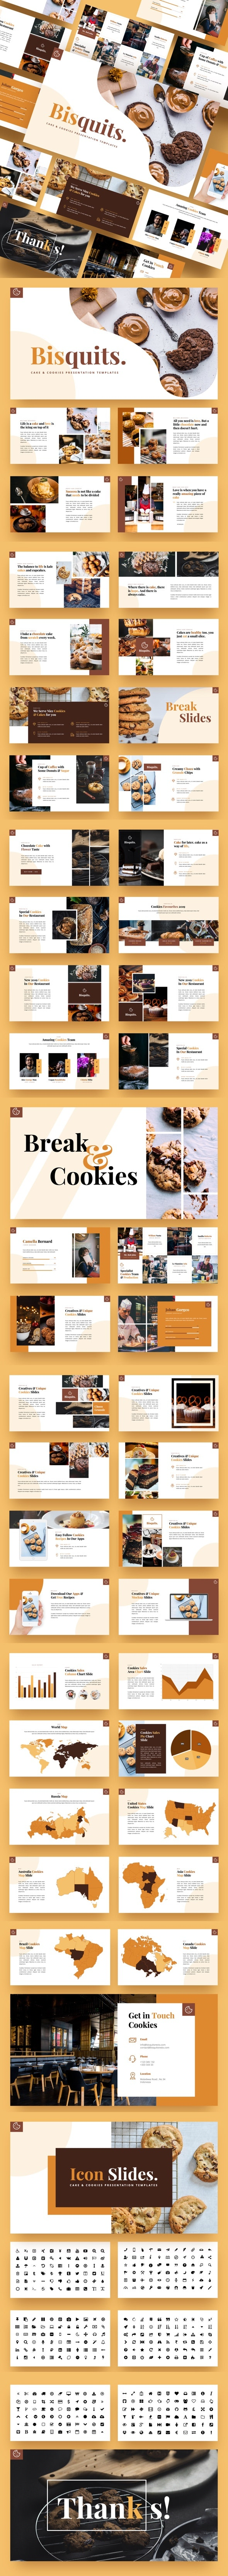 Bisquits - Cake & Cookies Google Slides Template - Google Slides Presentation Templates